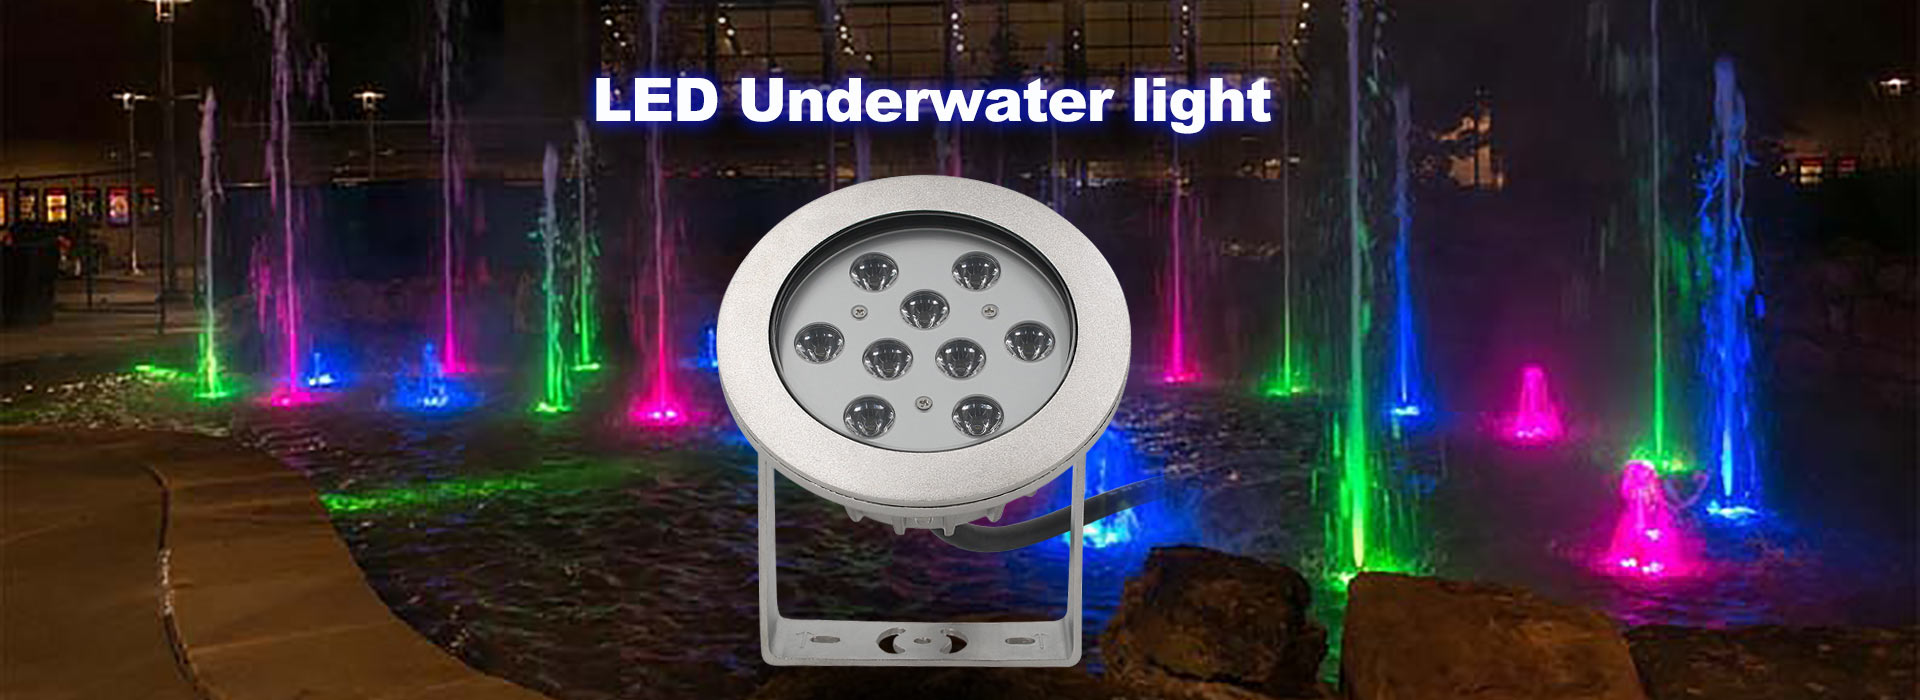 led-underwater-lights